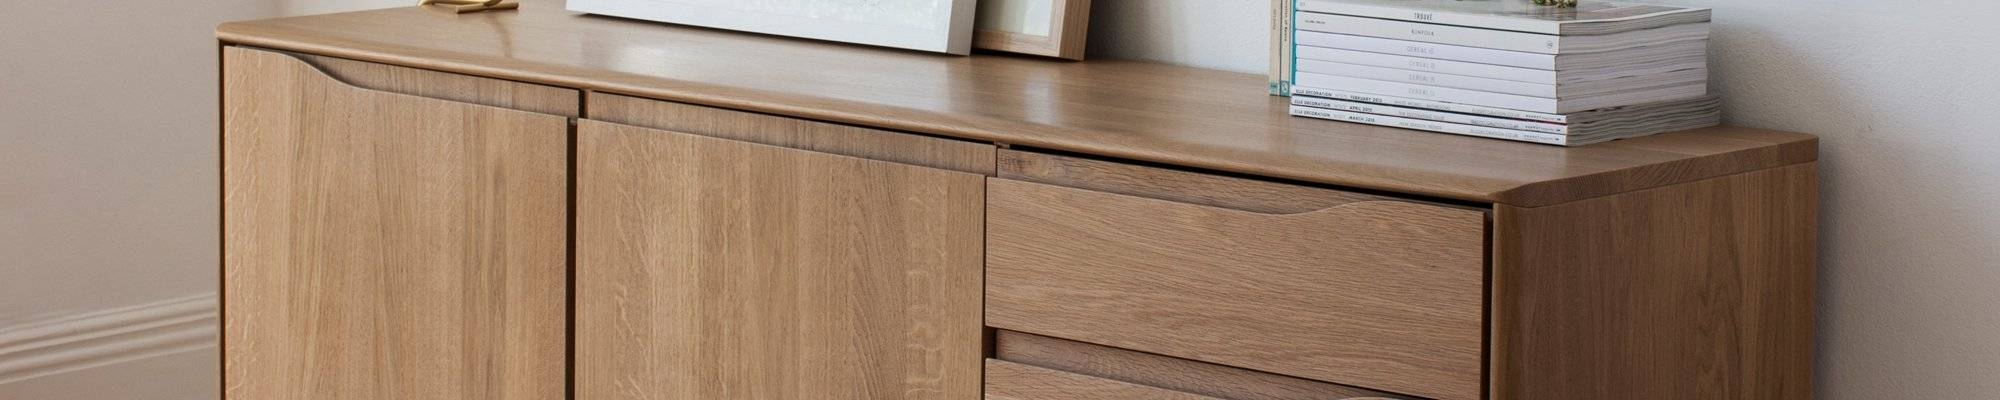 Dark Wood Sideboards | Designer Contemporary Sideboards | Heal's within Wood Sideboards (Image 8 of 30)